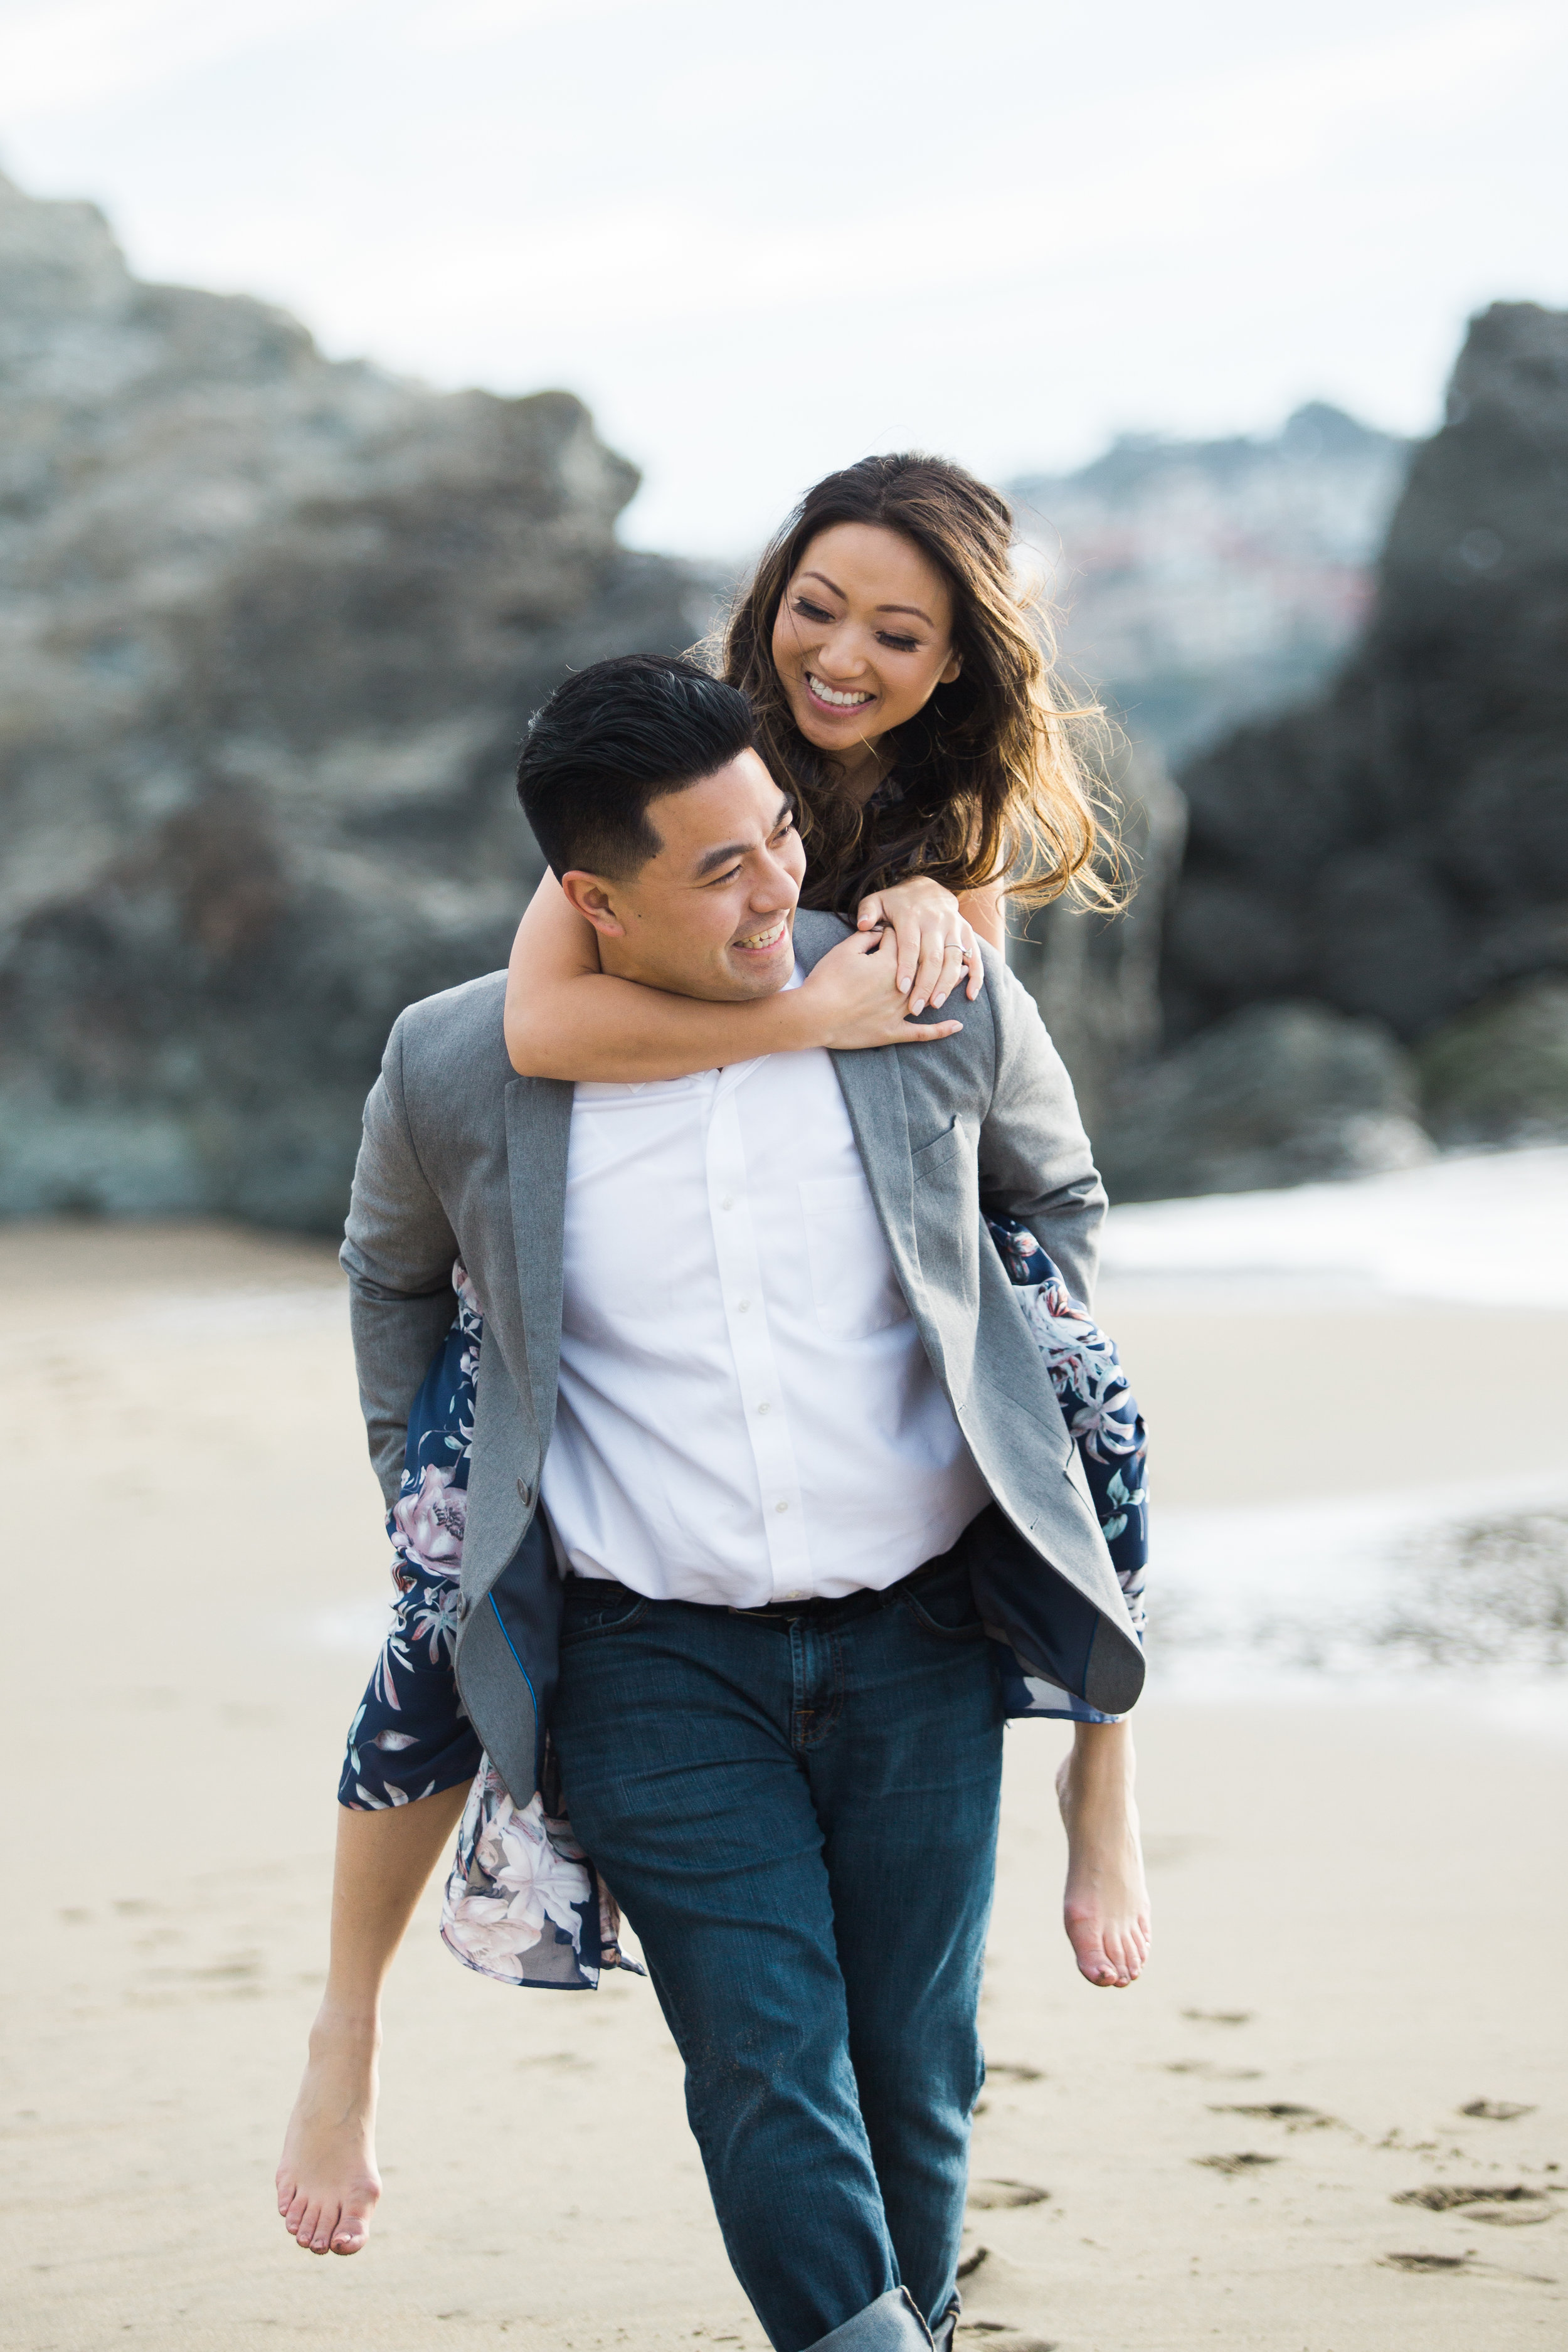 San-Francisco-Engagement-Session-Tara-Nichole-Photo-31.jpg